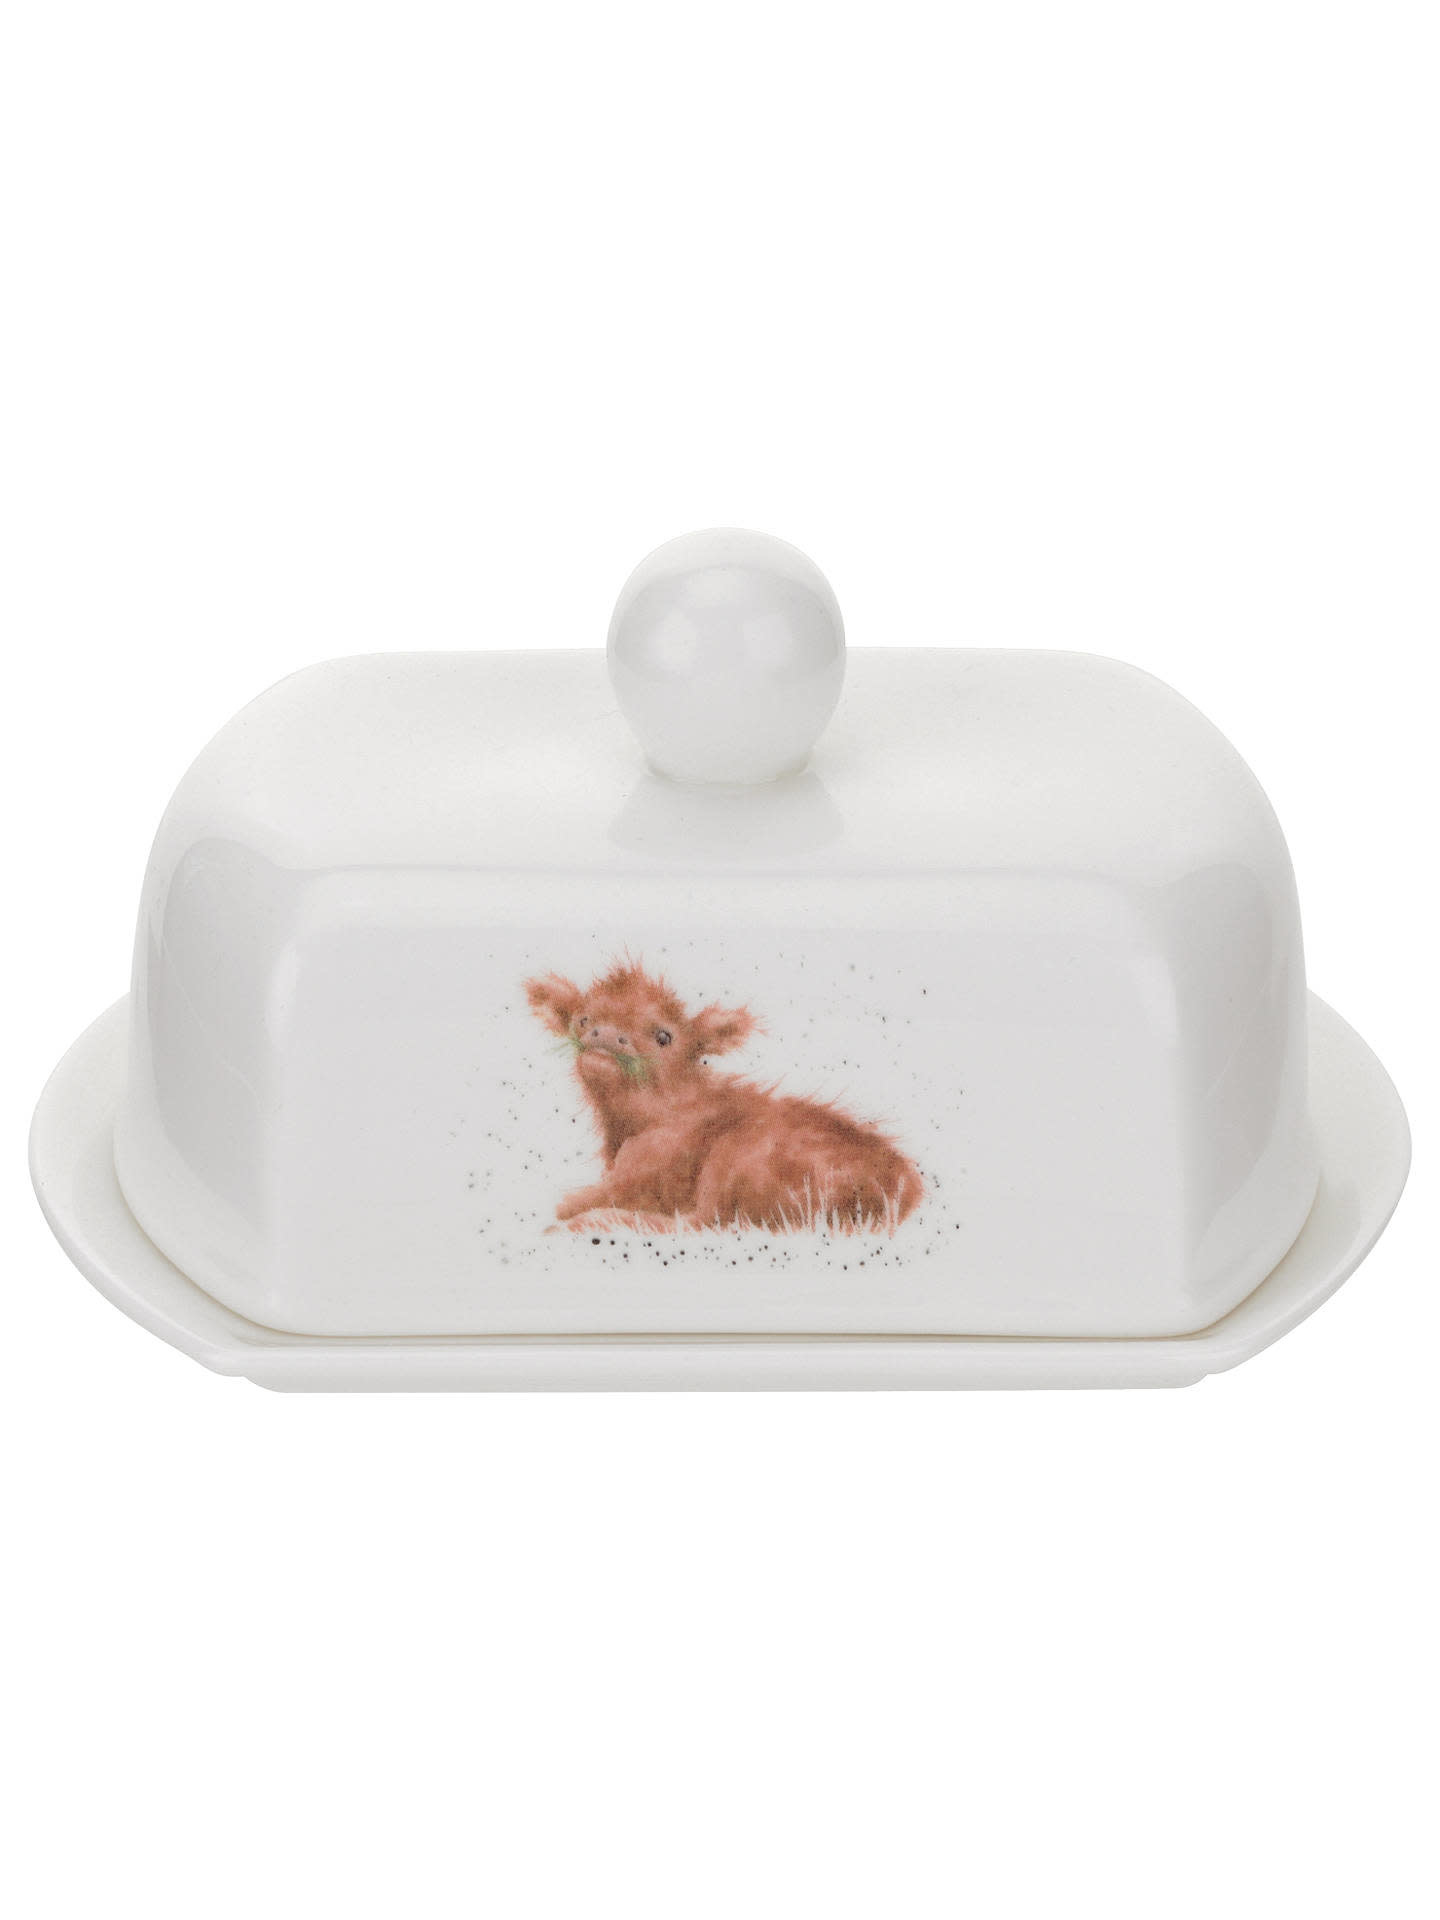 Wrendale Designs WRNDL Covered Butter Dish (Calf)